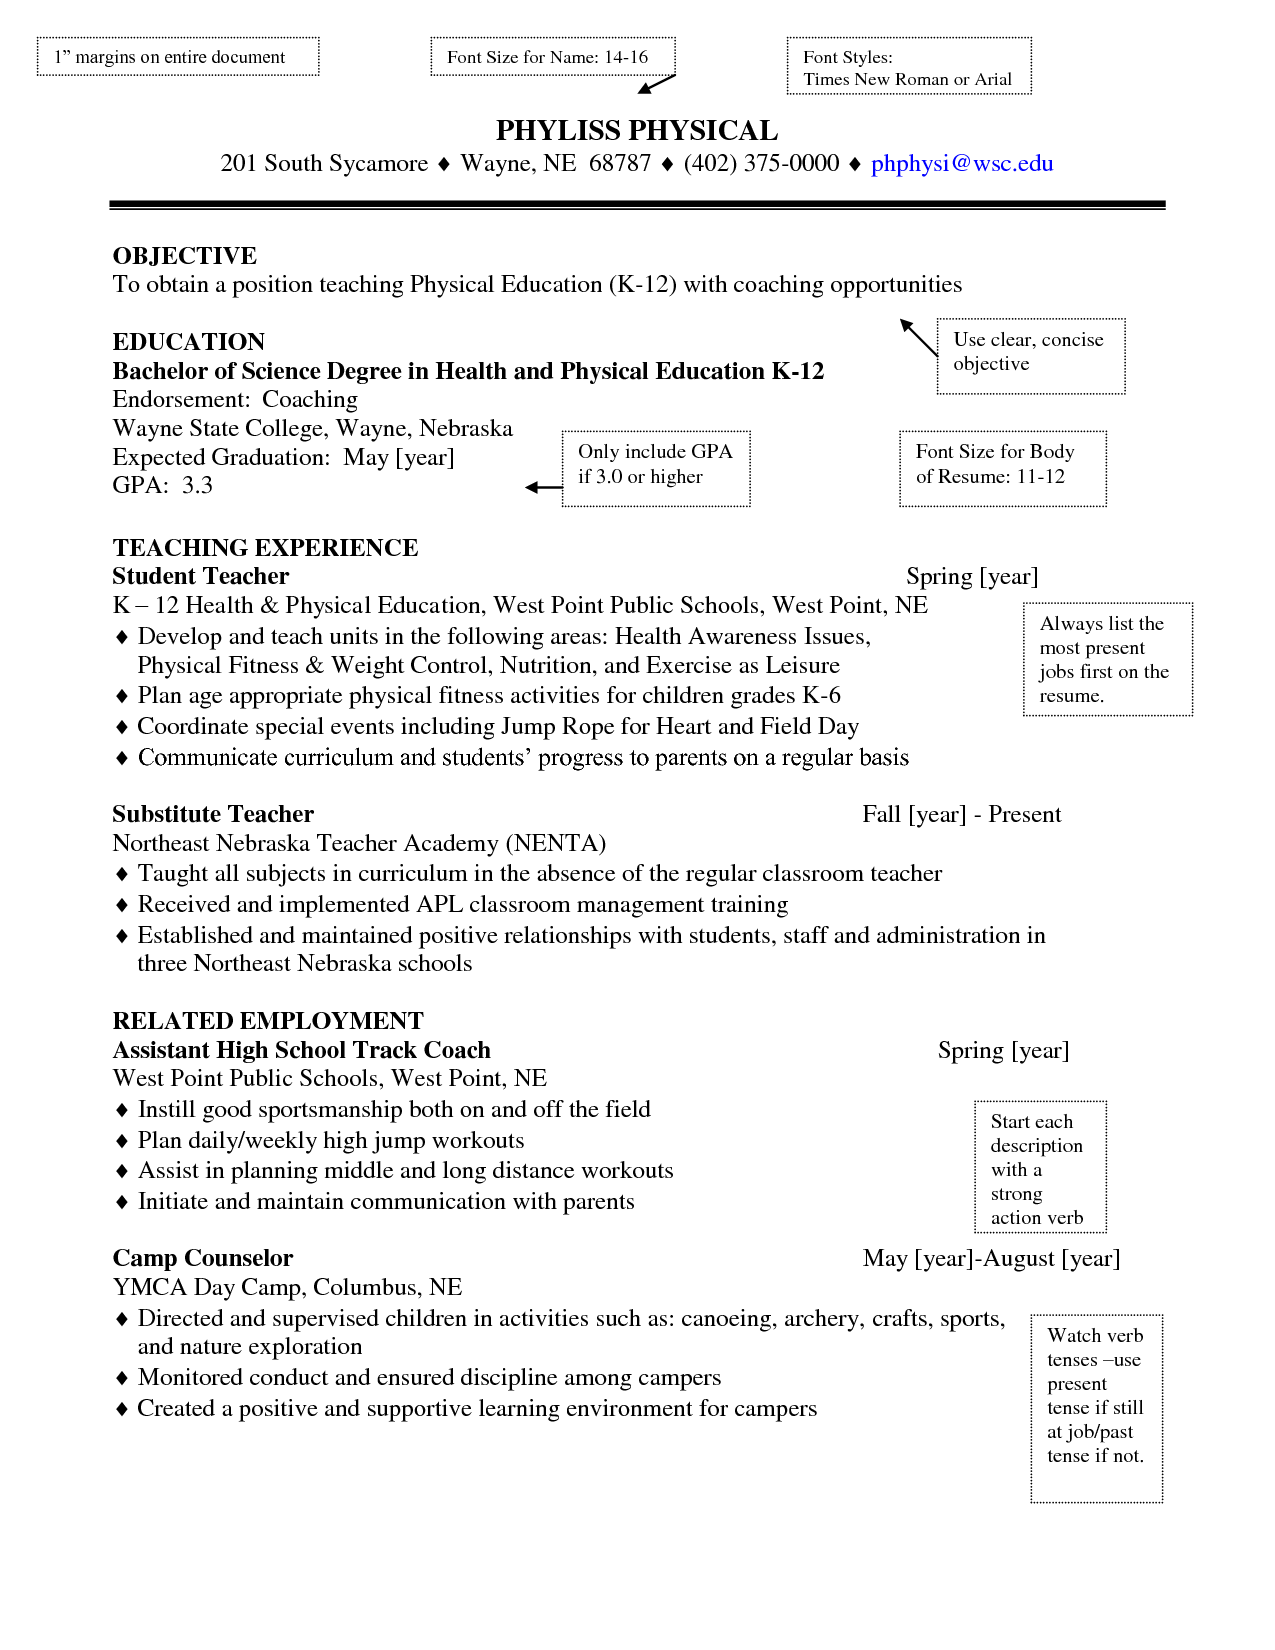 Samples Of Special Education Teacher Resumes  Special Education Teacher Resume